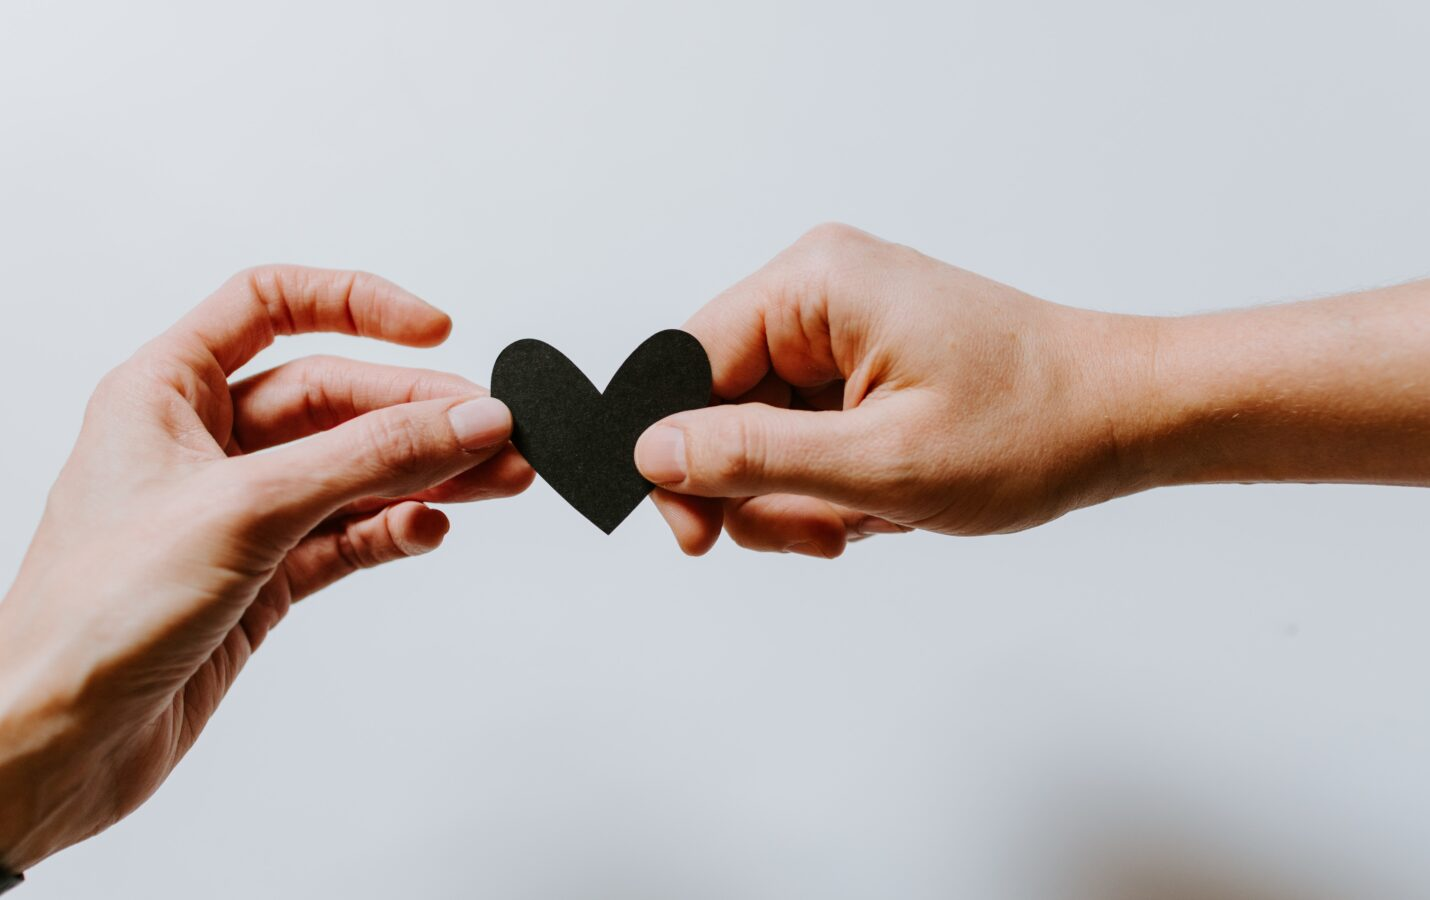 An image showing two hands holding a black heart. This is a way to achieving great customer experience